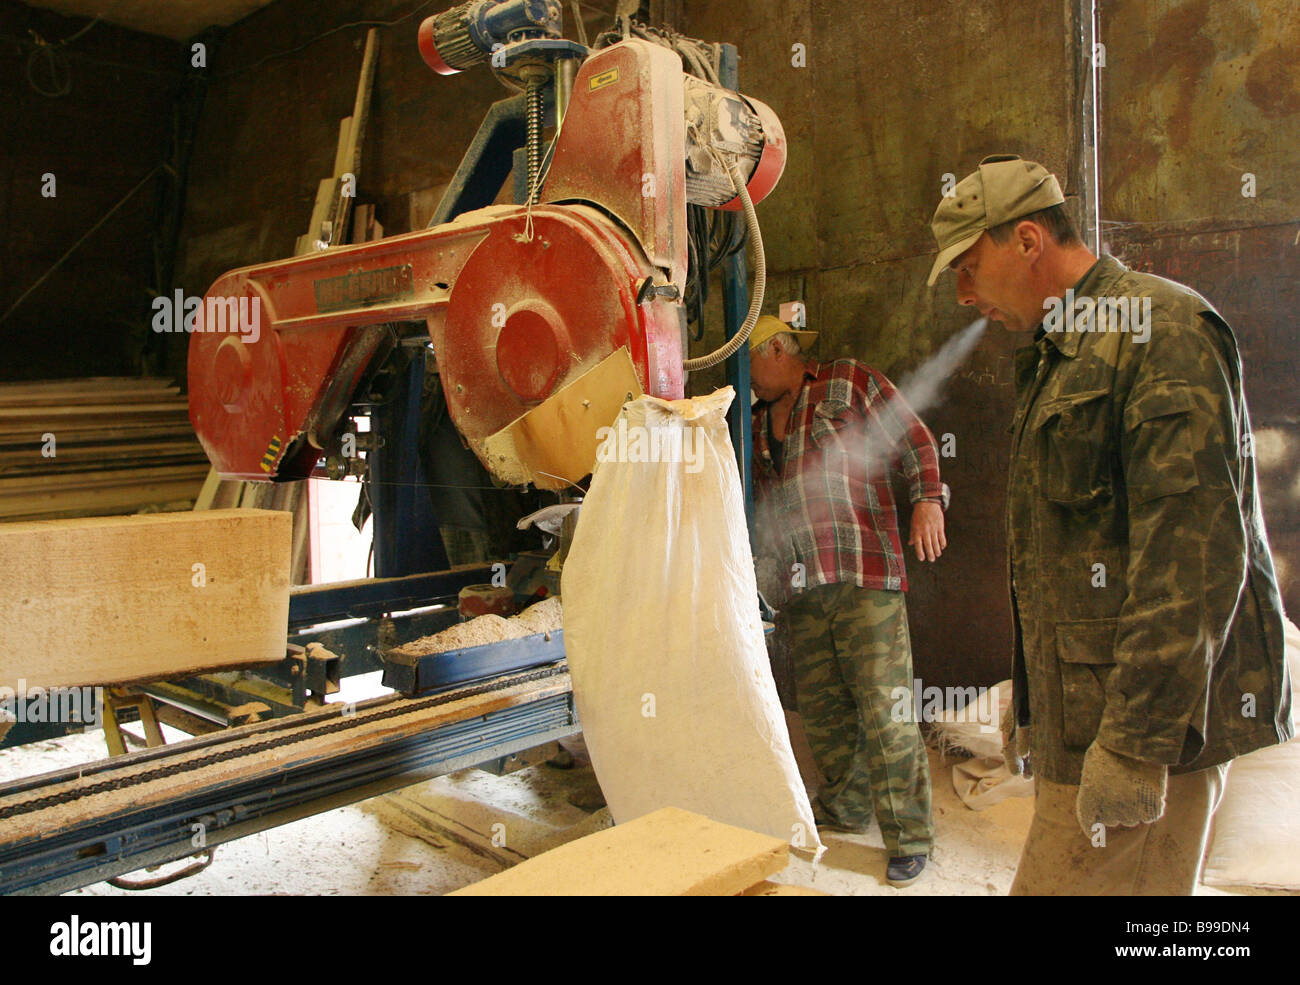 Spartak Ltd saw mill routine Yezvino village in the Tver Region Central Russia - Stock Image